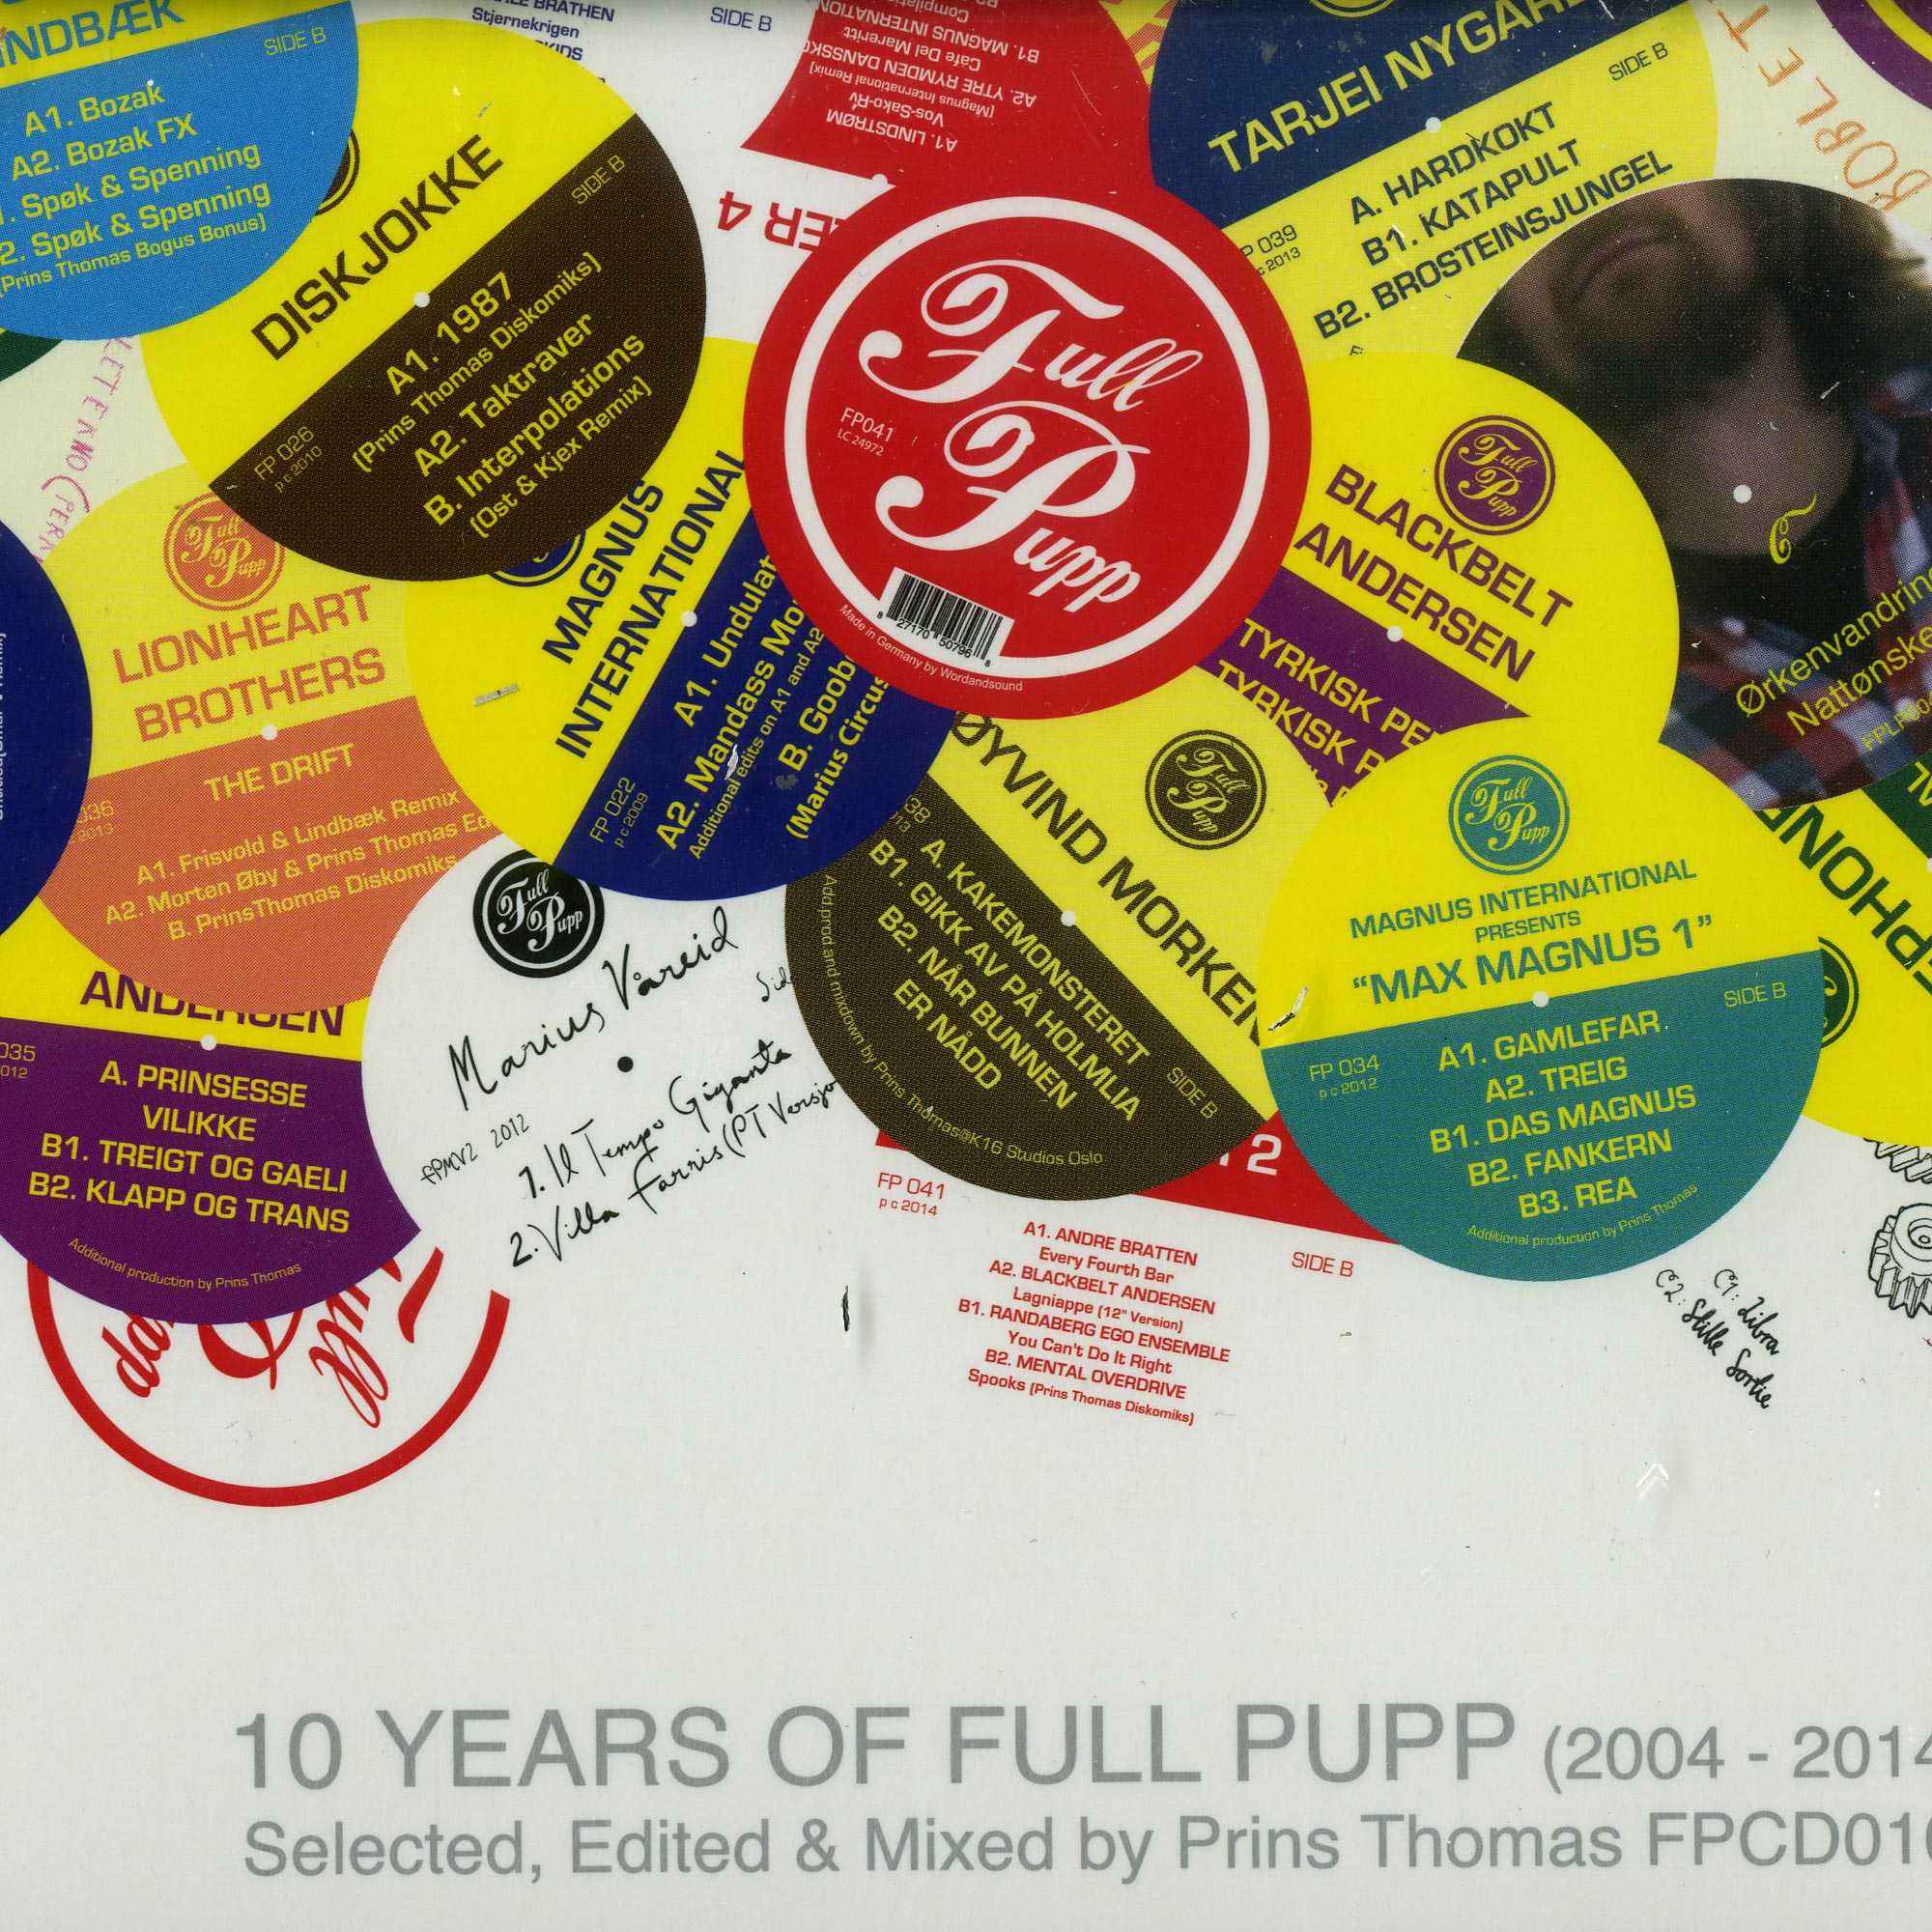 10 Years Of Full Pupp - SELECTED, EDITED, MIXED BY PRINS THOMAS